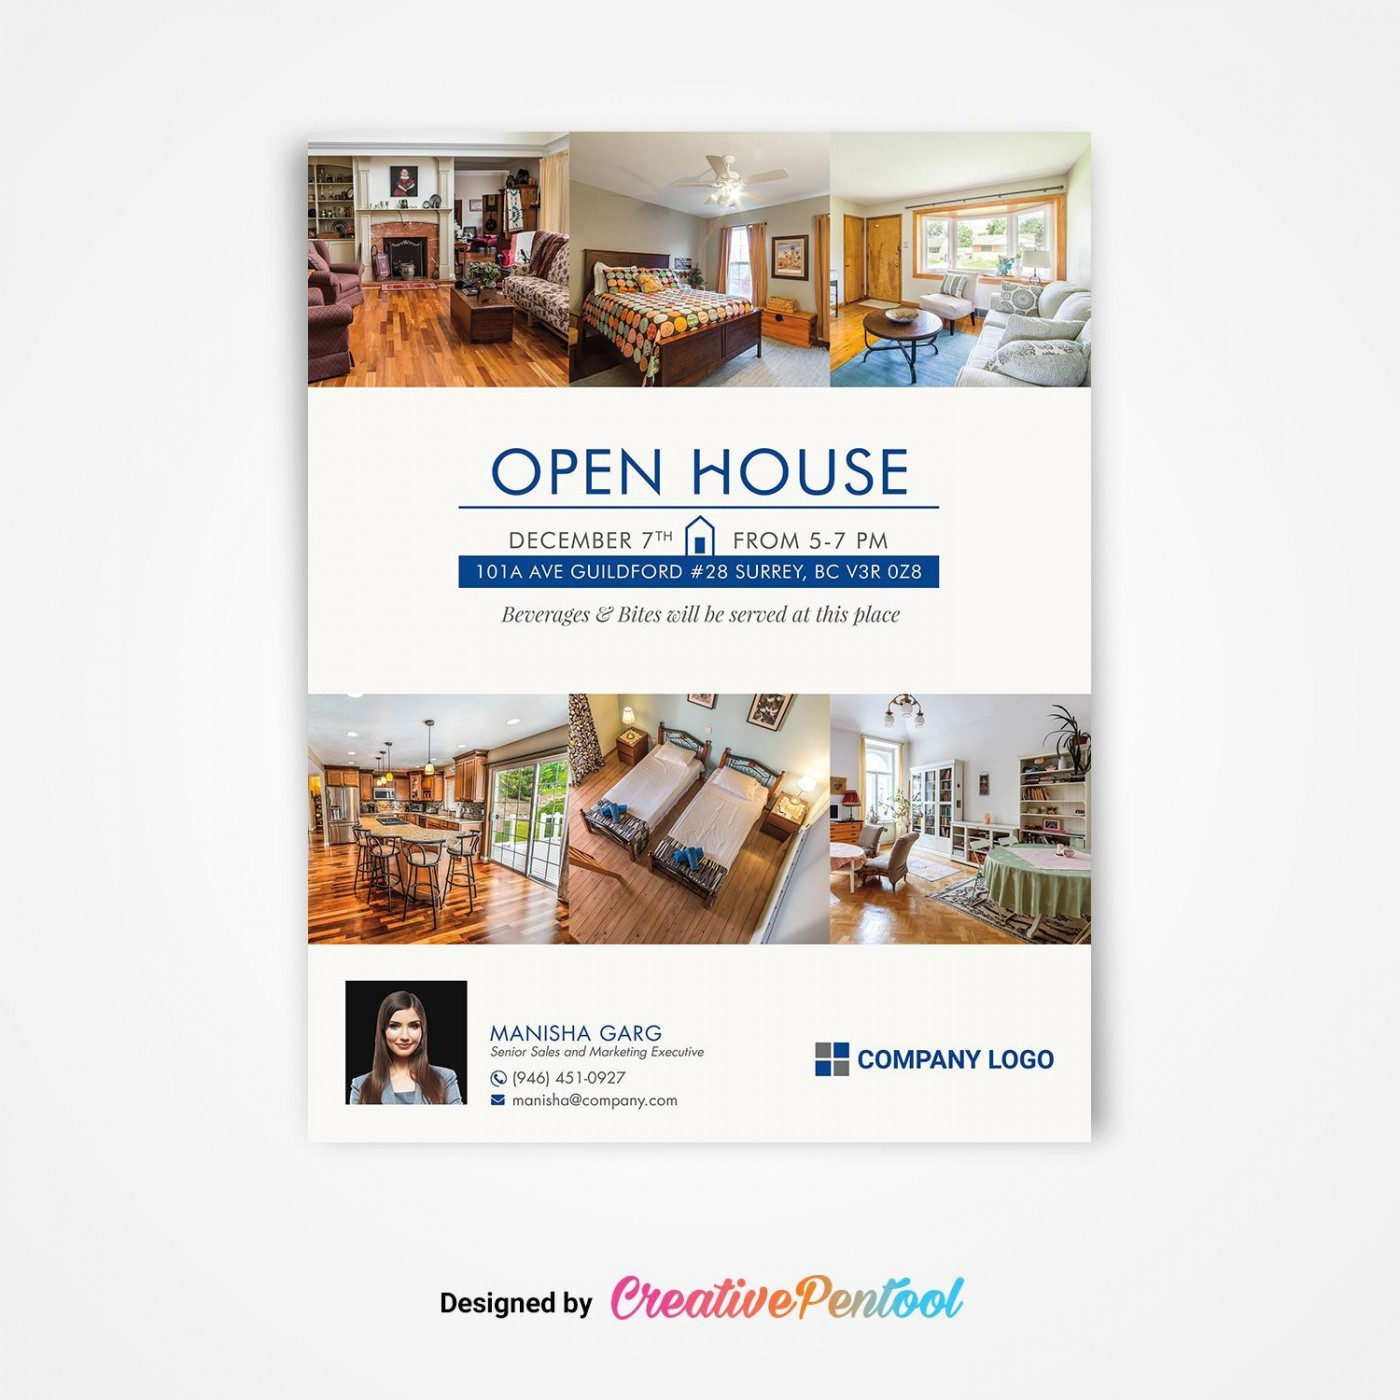 002 Sensational Open House Flyer Template Word High Definition  Free Microsoft1400